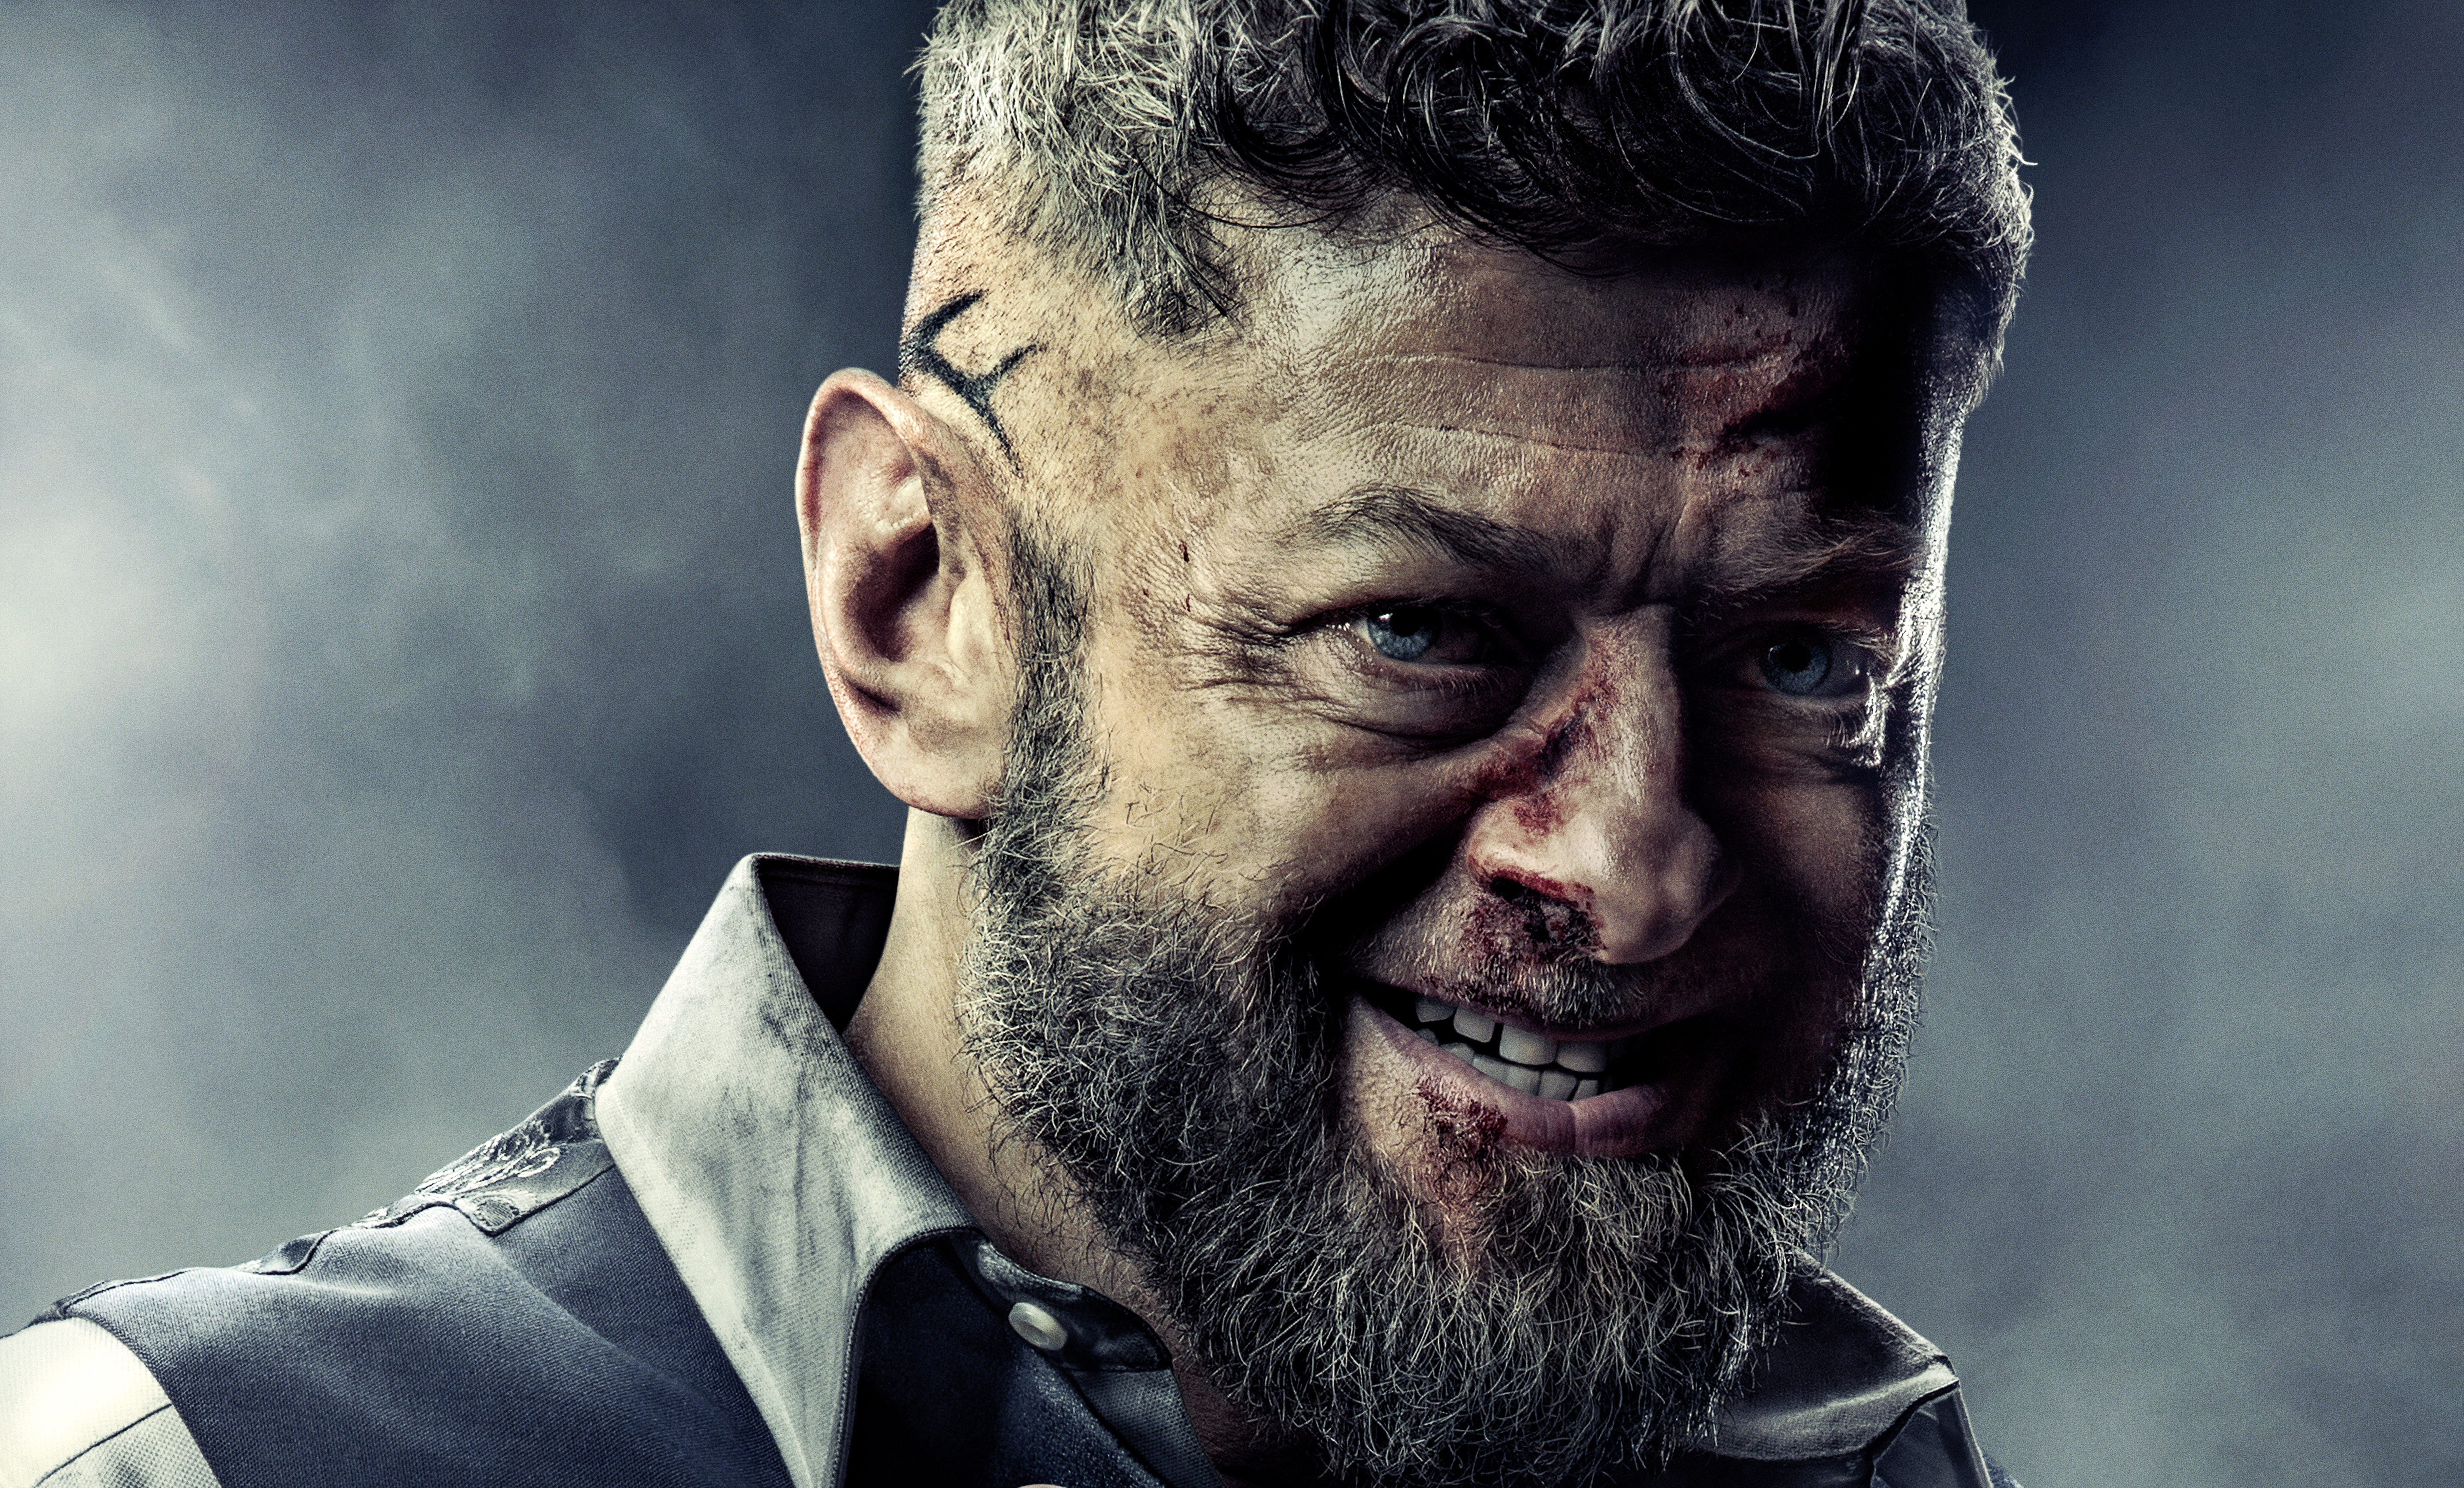 6341x3830 - Andy Serkis Wallpapers 2